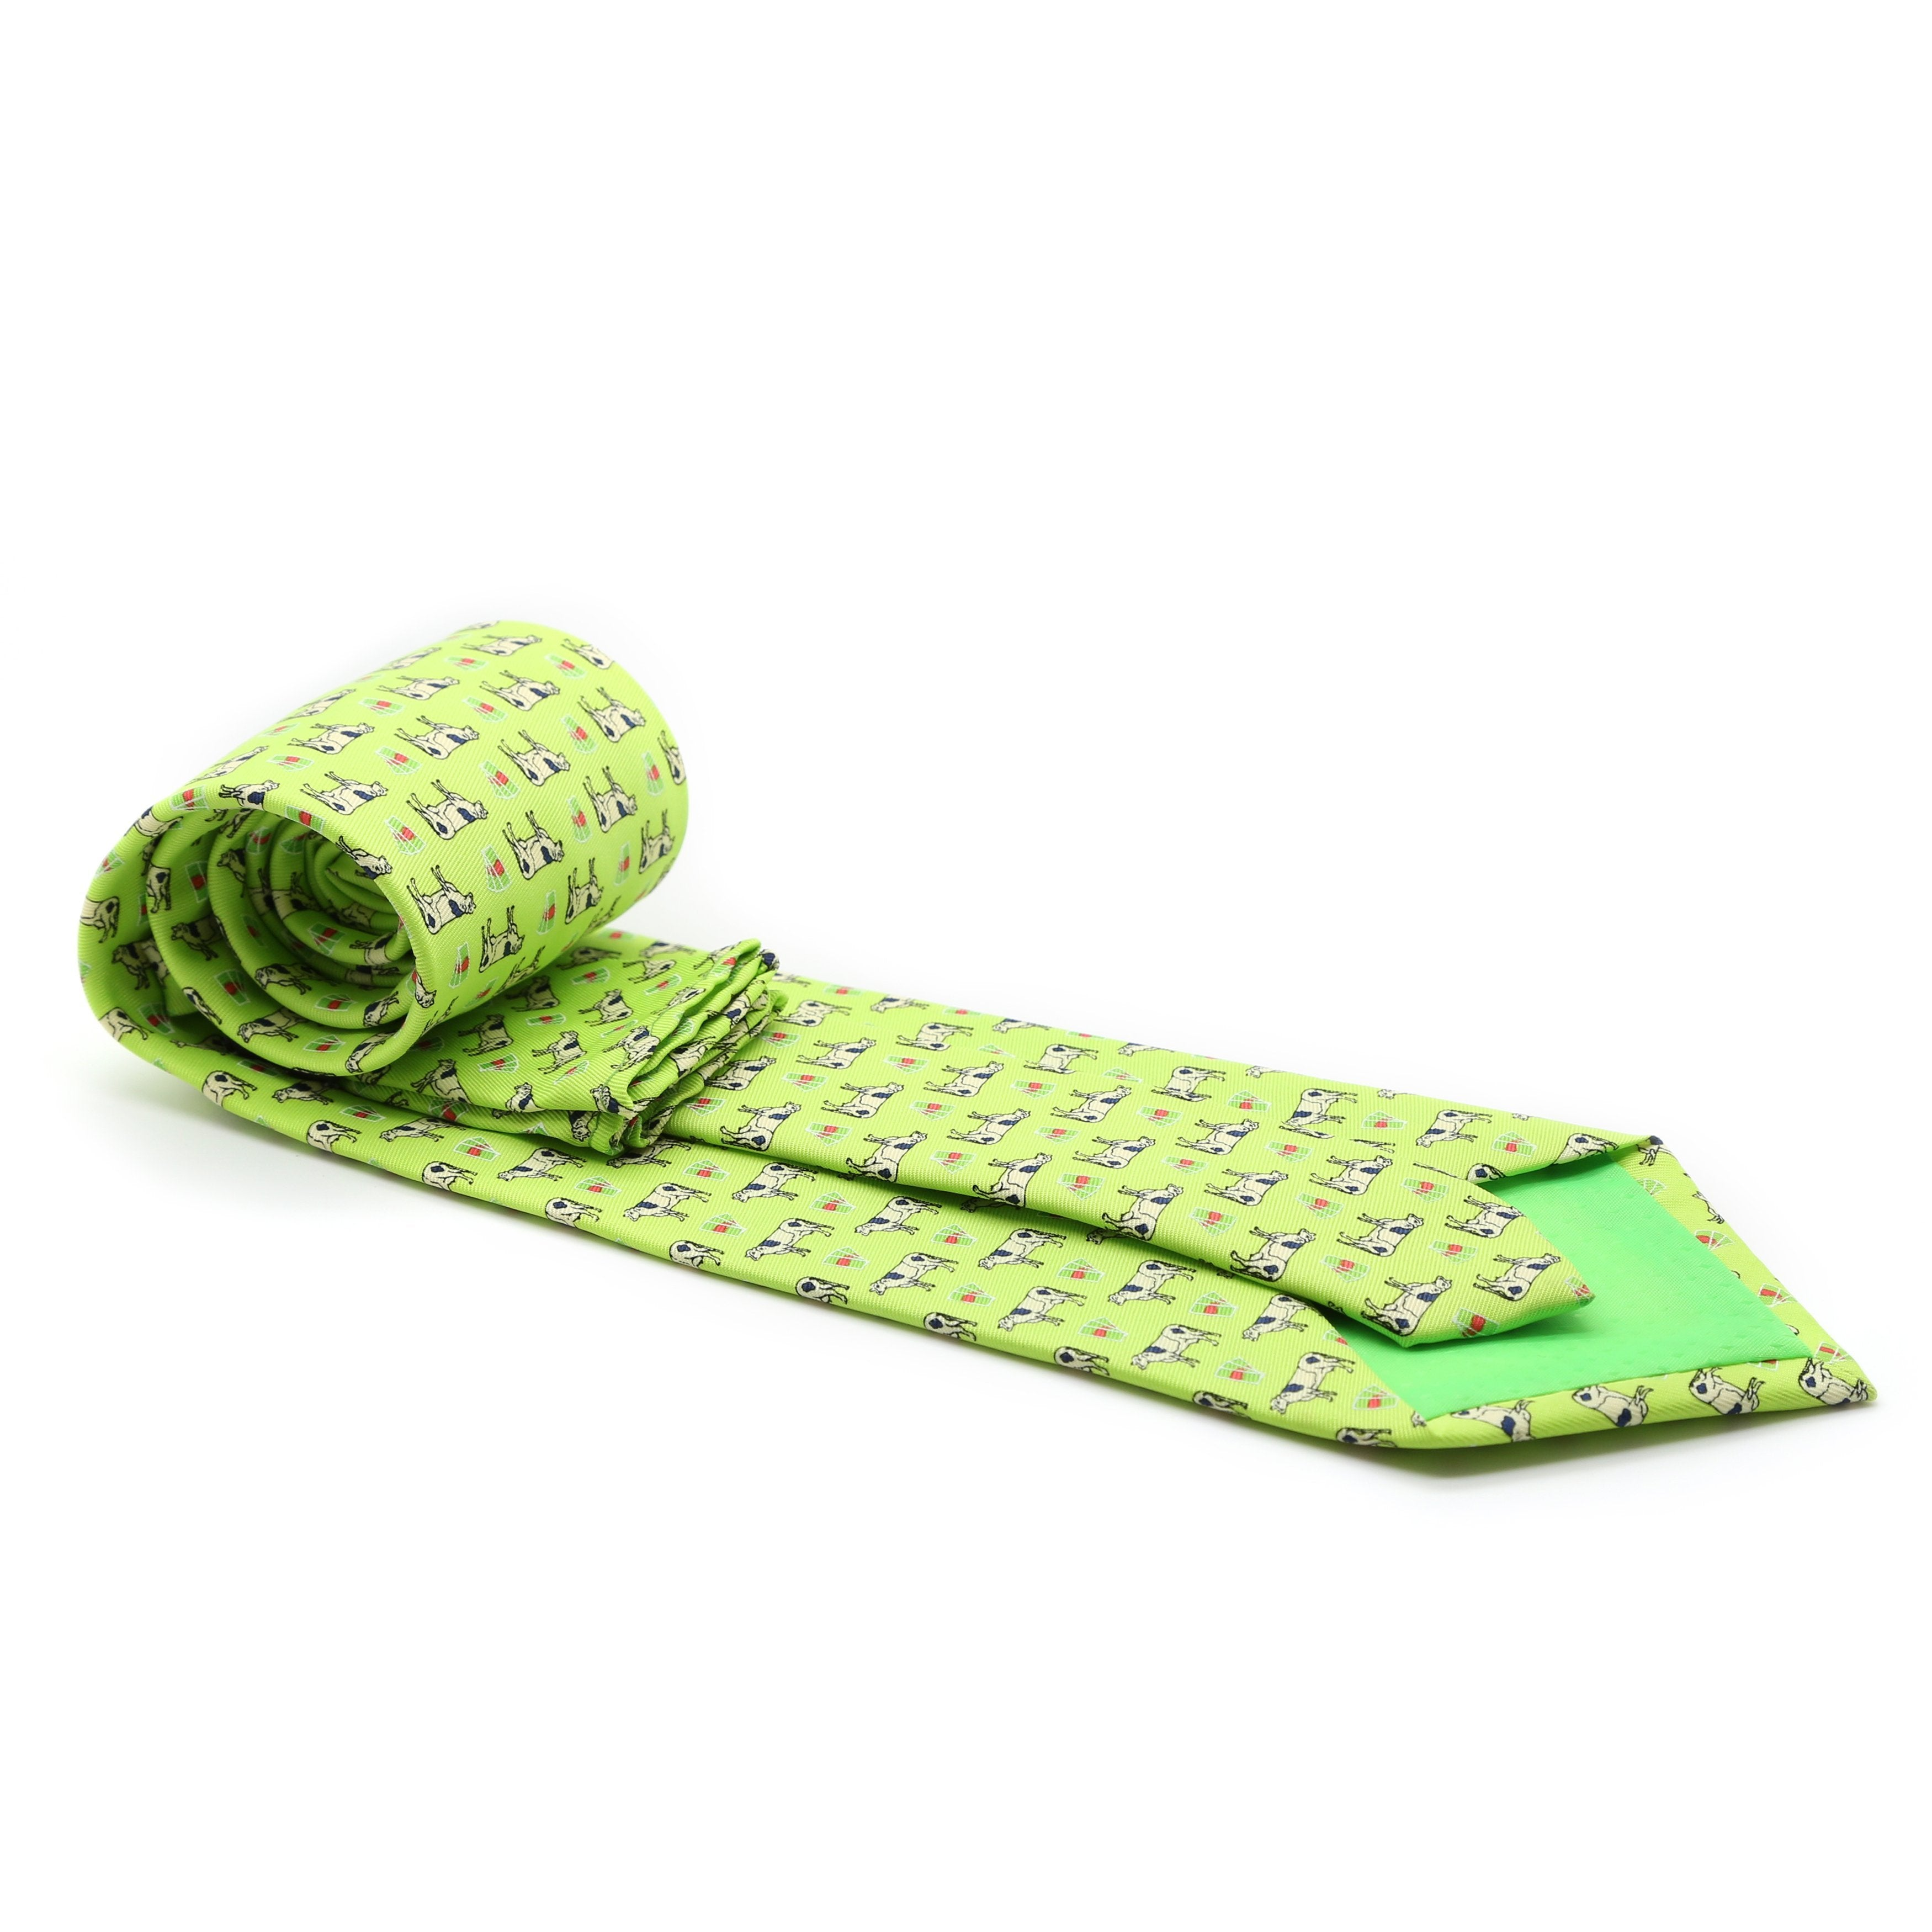 Cow Lime Green Necktie with Handkerchief Set - Giorgio's Menswear